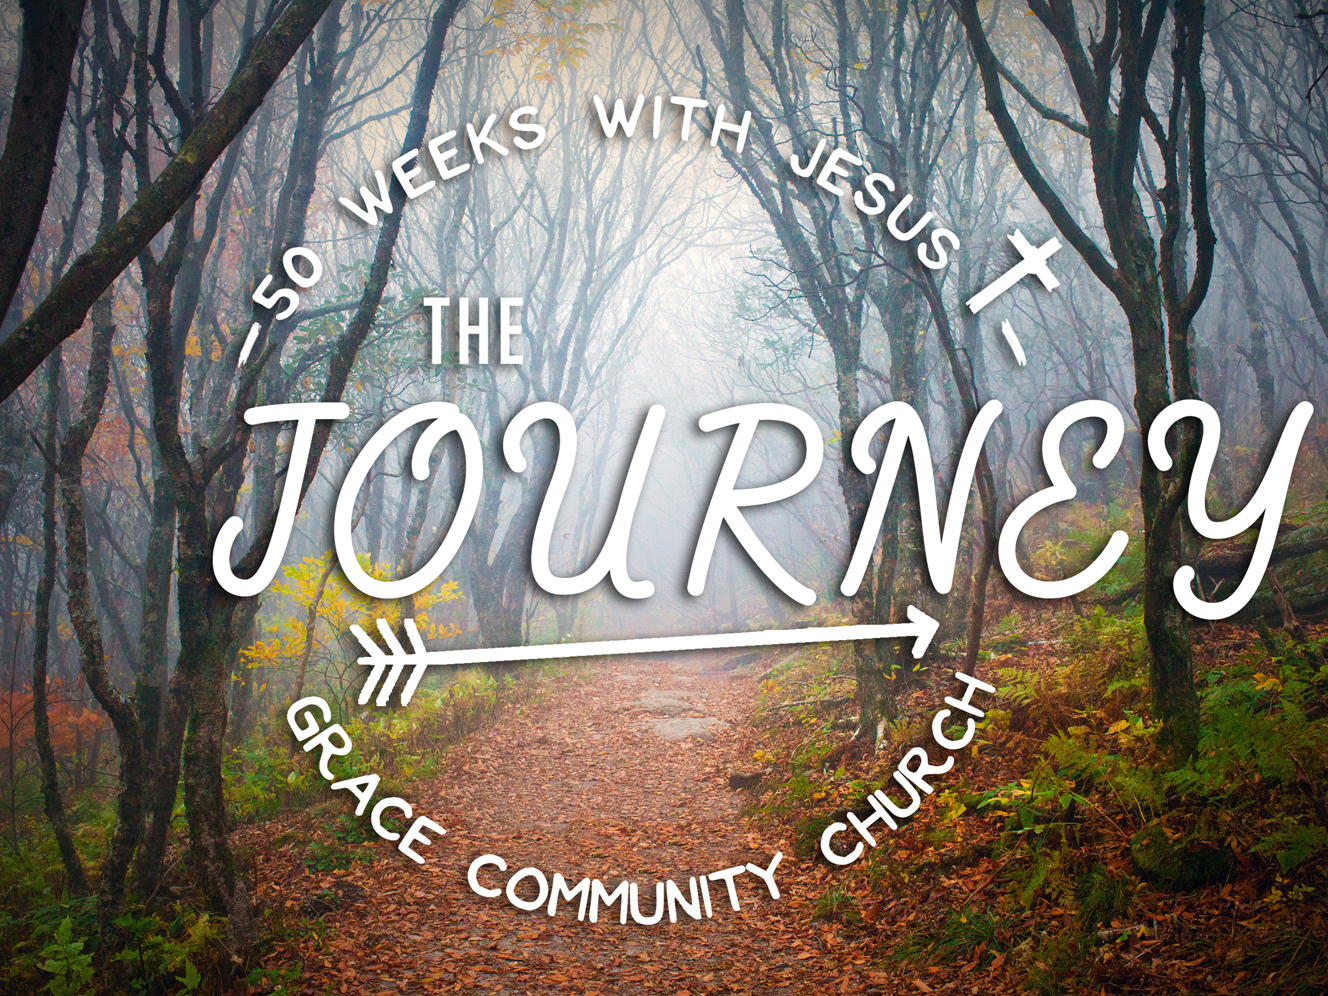 The Journey- Fall 2015 through Summer 2016